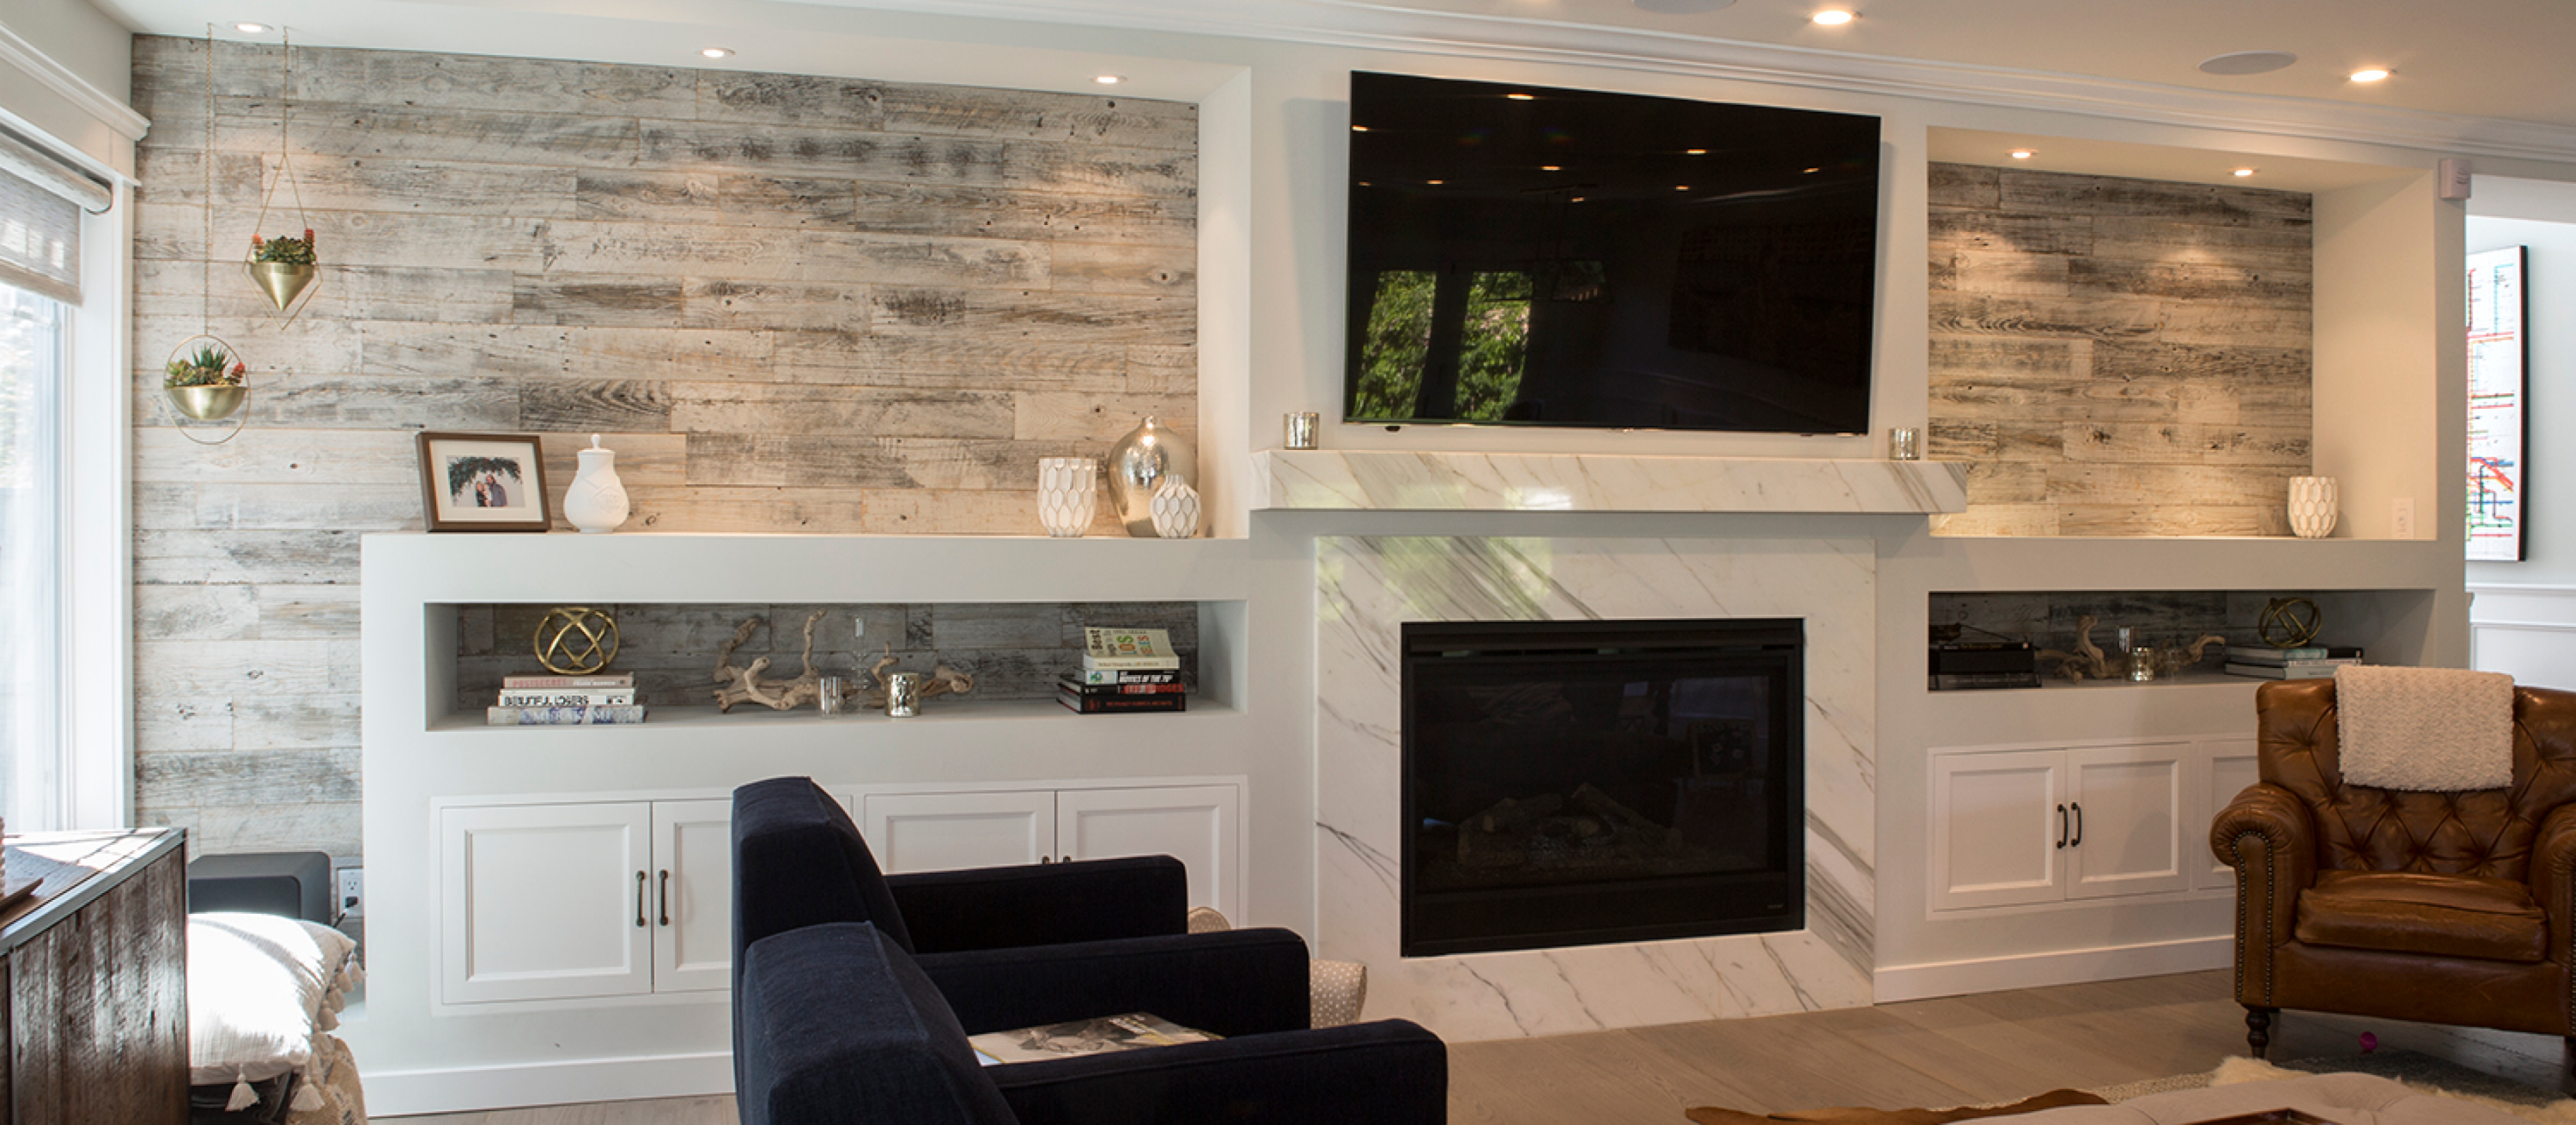 Modern family room with white cabinets and a Stikwood real reclaimed pine peel and stick wood plank accent wall with silver, gray, tan and brown colors.